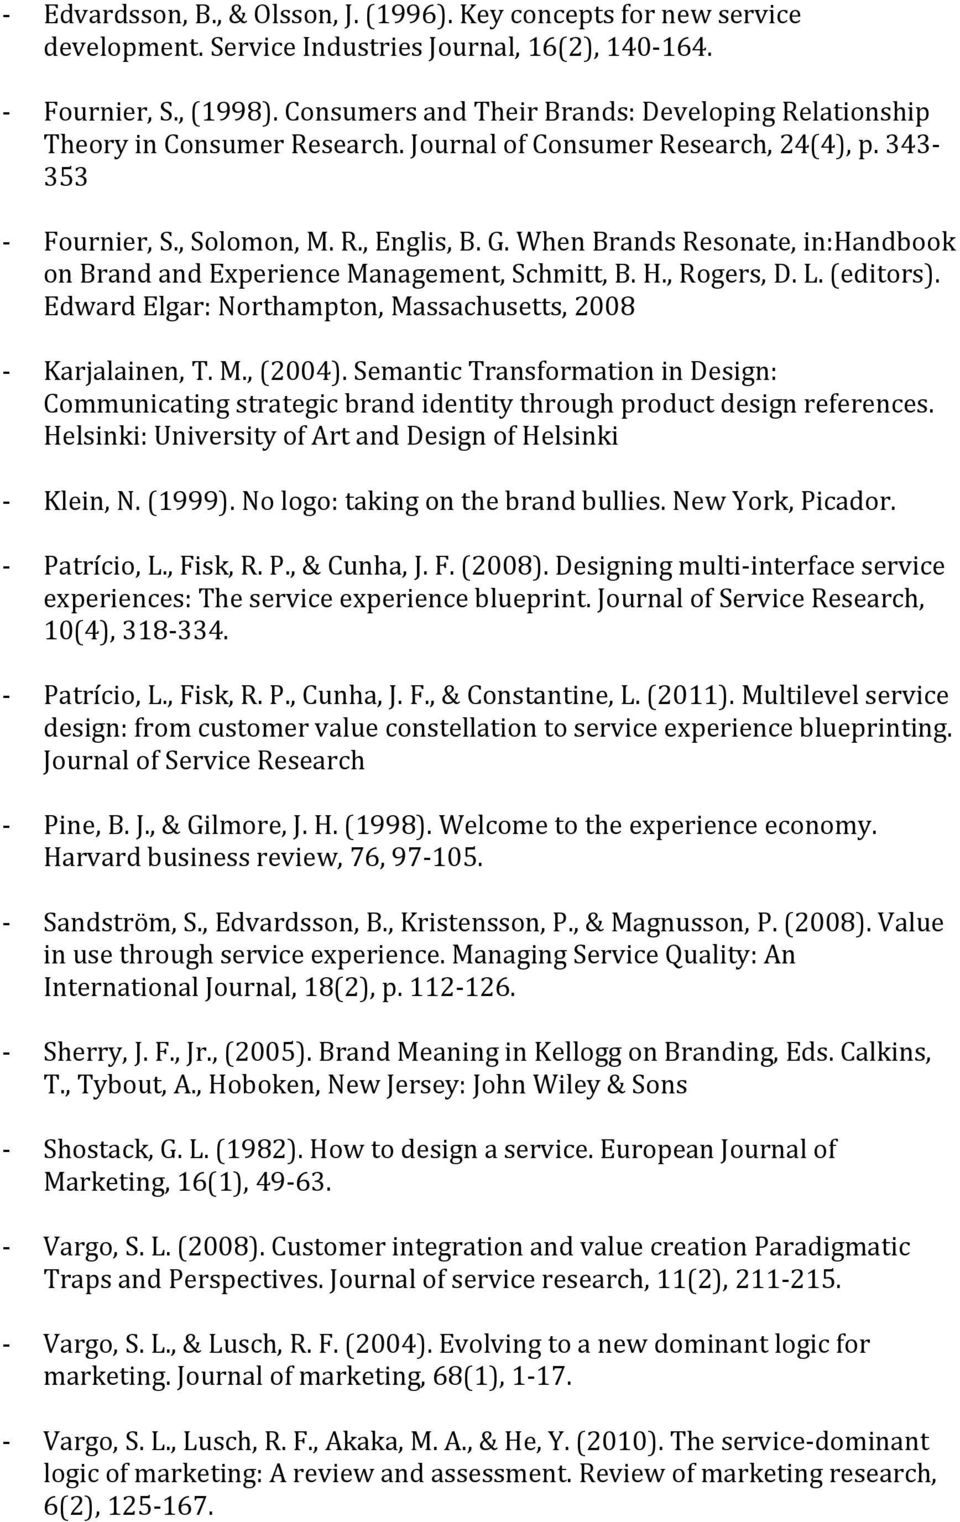 When Brands Resonate, in:handbook on Brand and Experience Management, Schmitt, B. H., Rogers, D. L. (editors). Edward Elgar: Northampton, Massachusetts, 2008 Karjalainen, T. M., (2004).